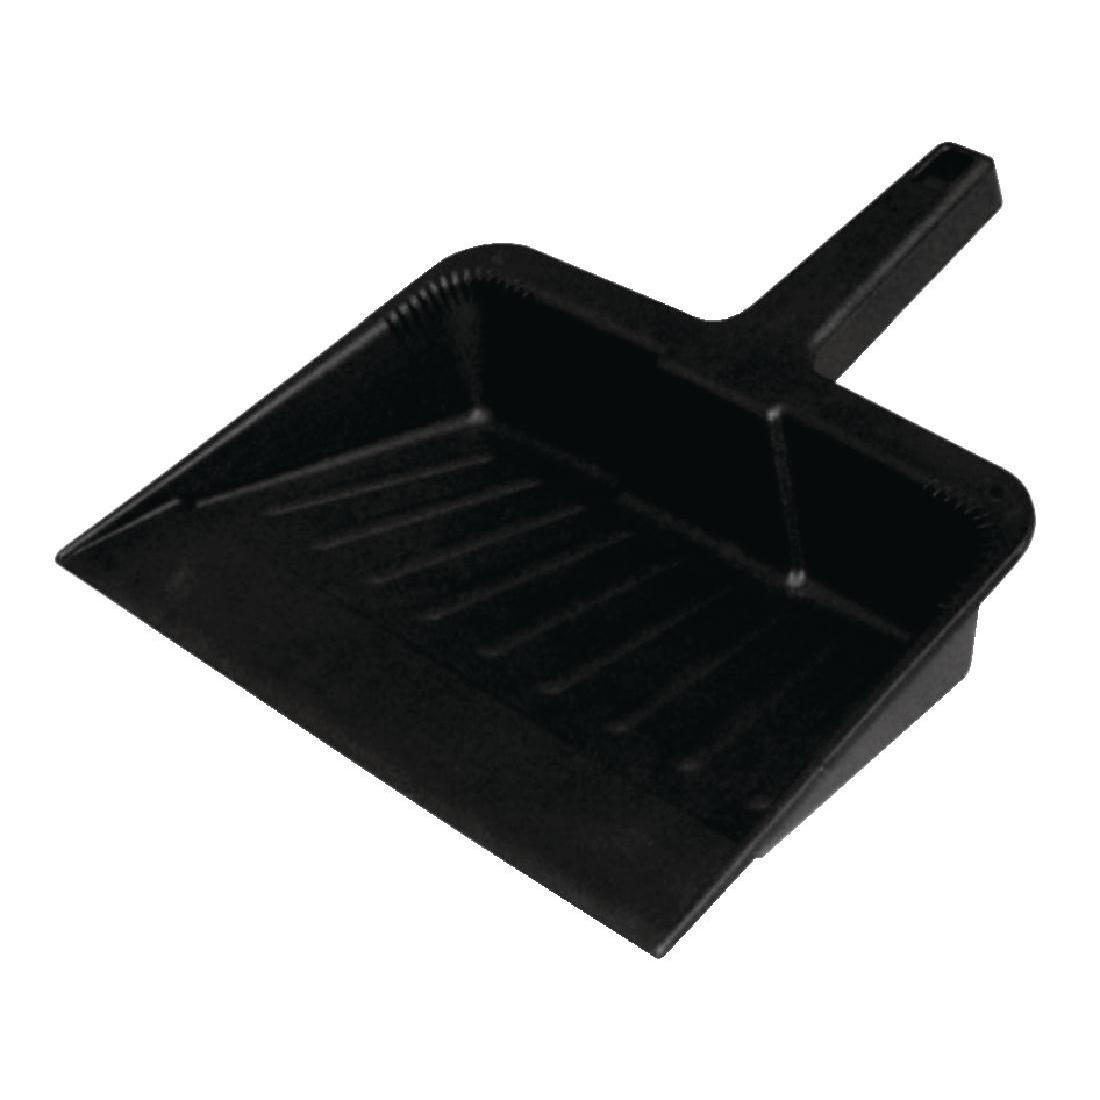 Jantex Heavy Duty Dust Pan